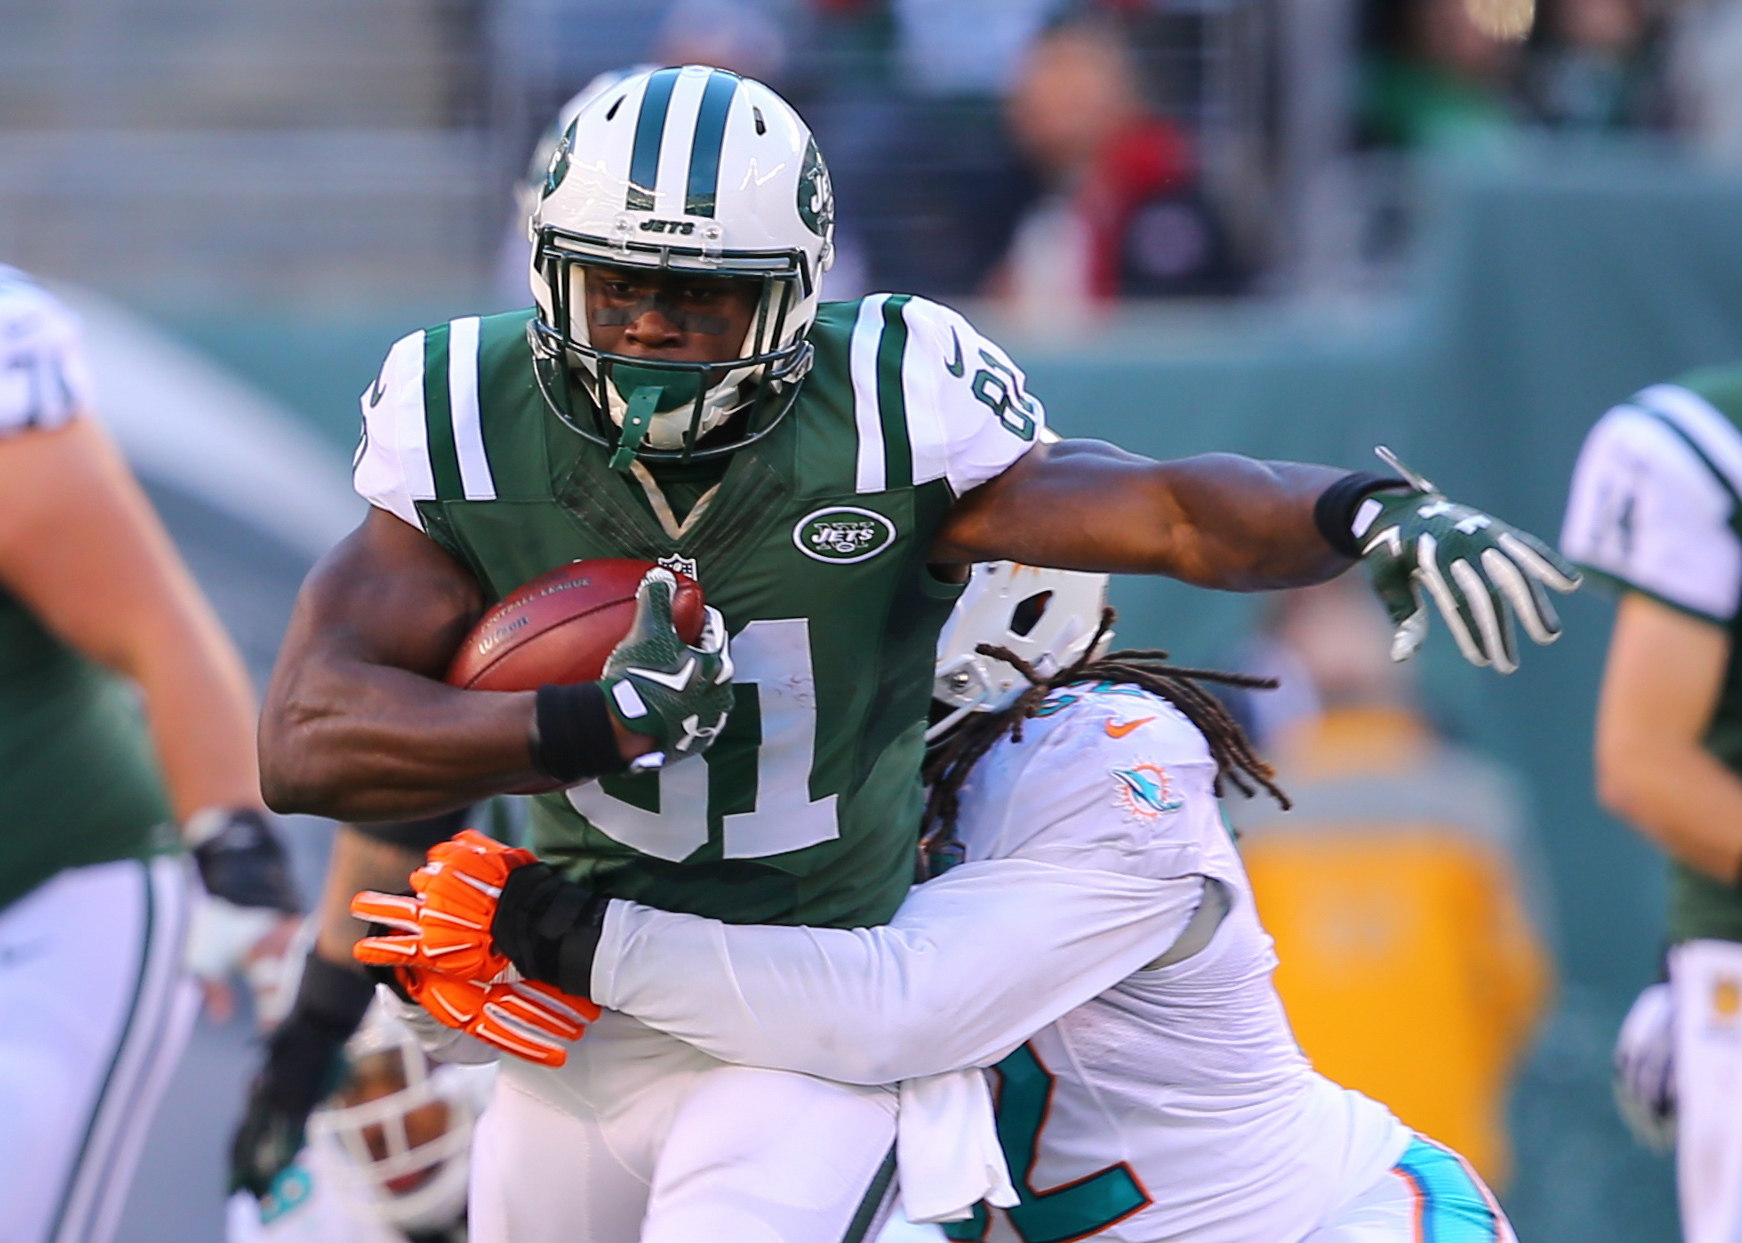 8961862-nfl-miami-dolphins-at-new-york-jets